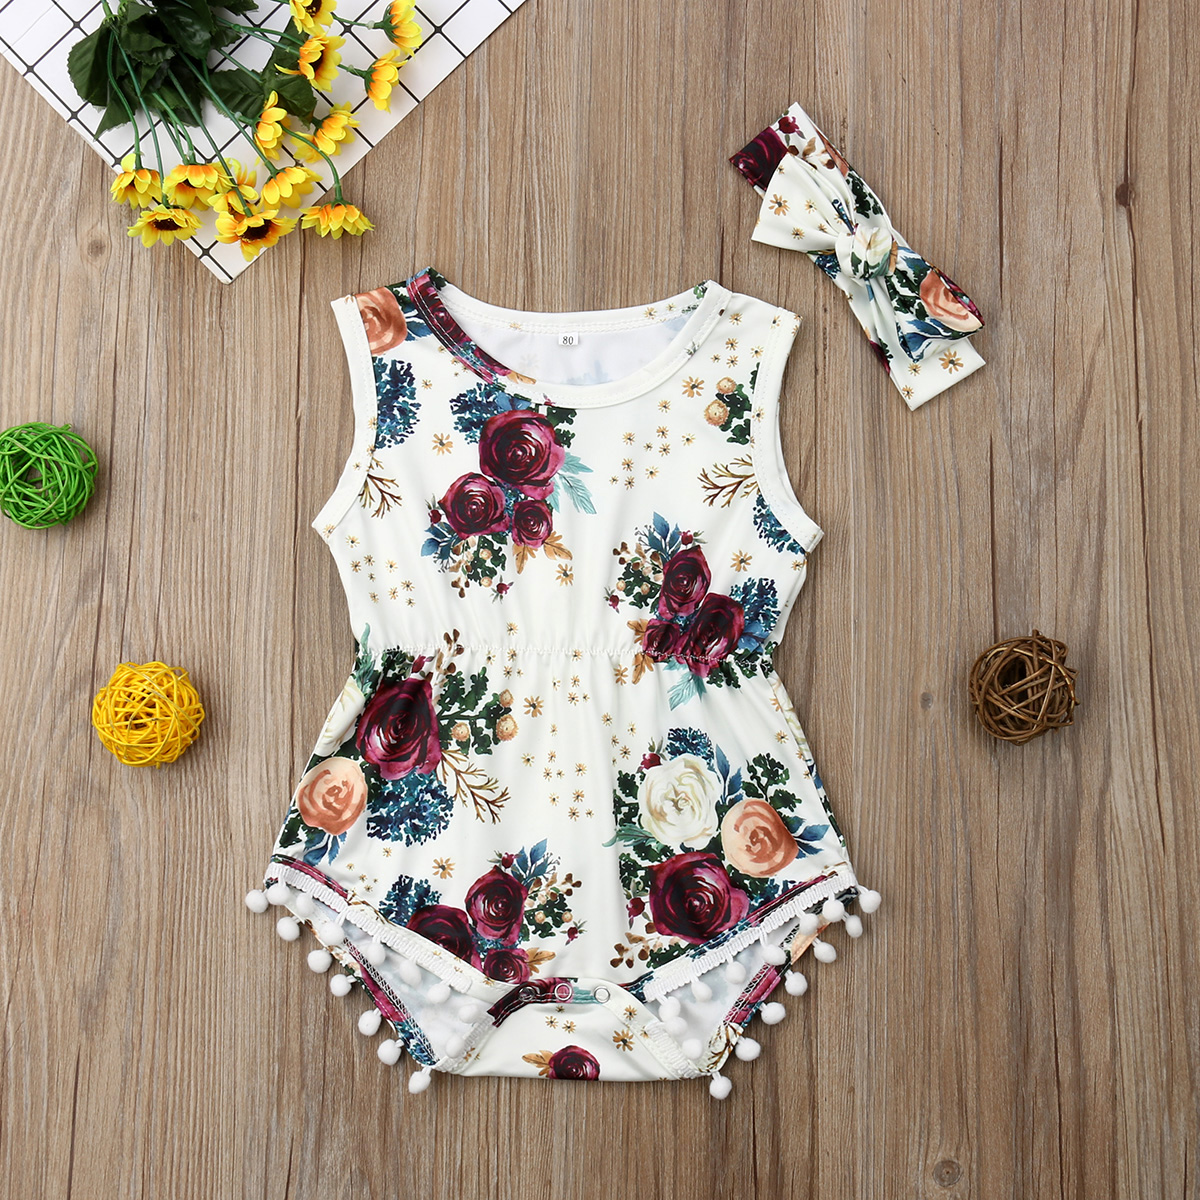 Newborn Baby Girls Floral   Romper   Jumpsuit Outfits Headband Summer Clothes